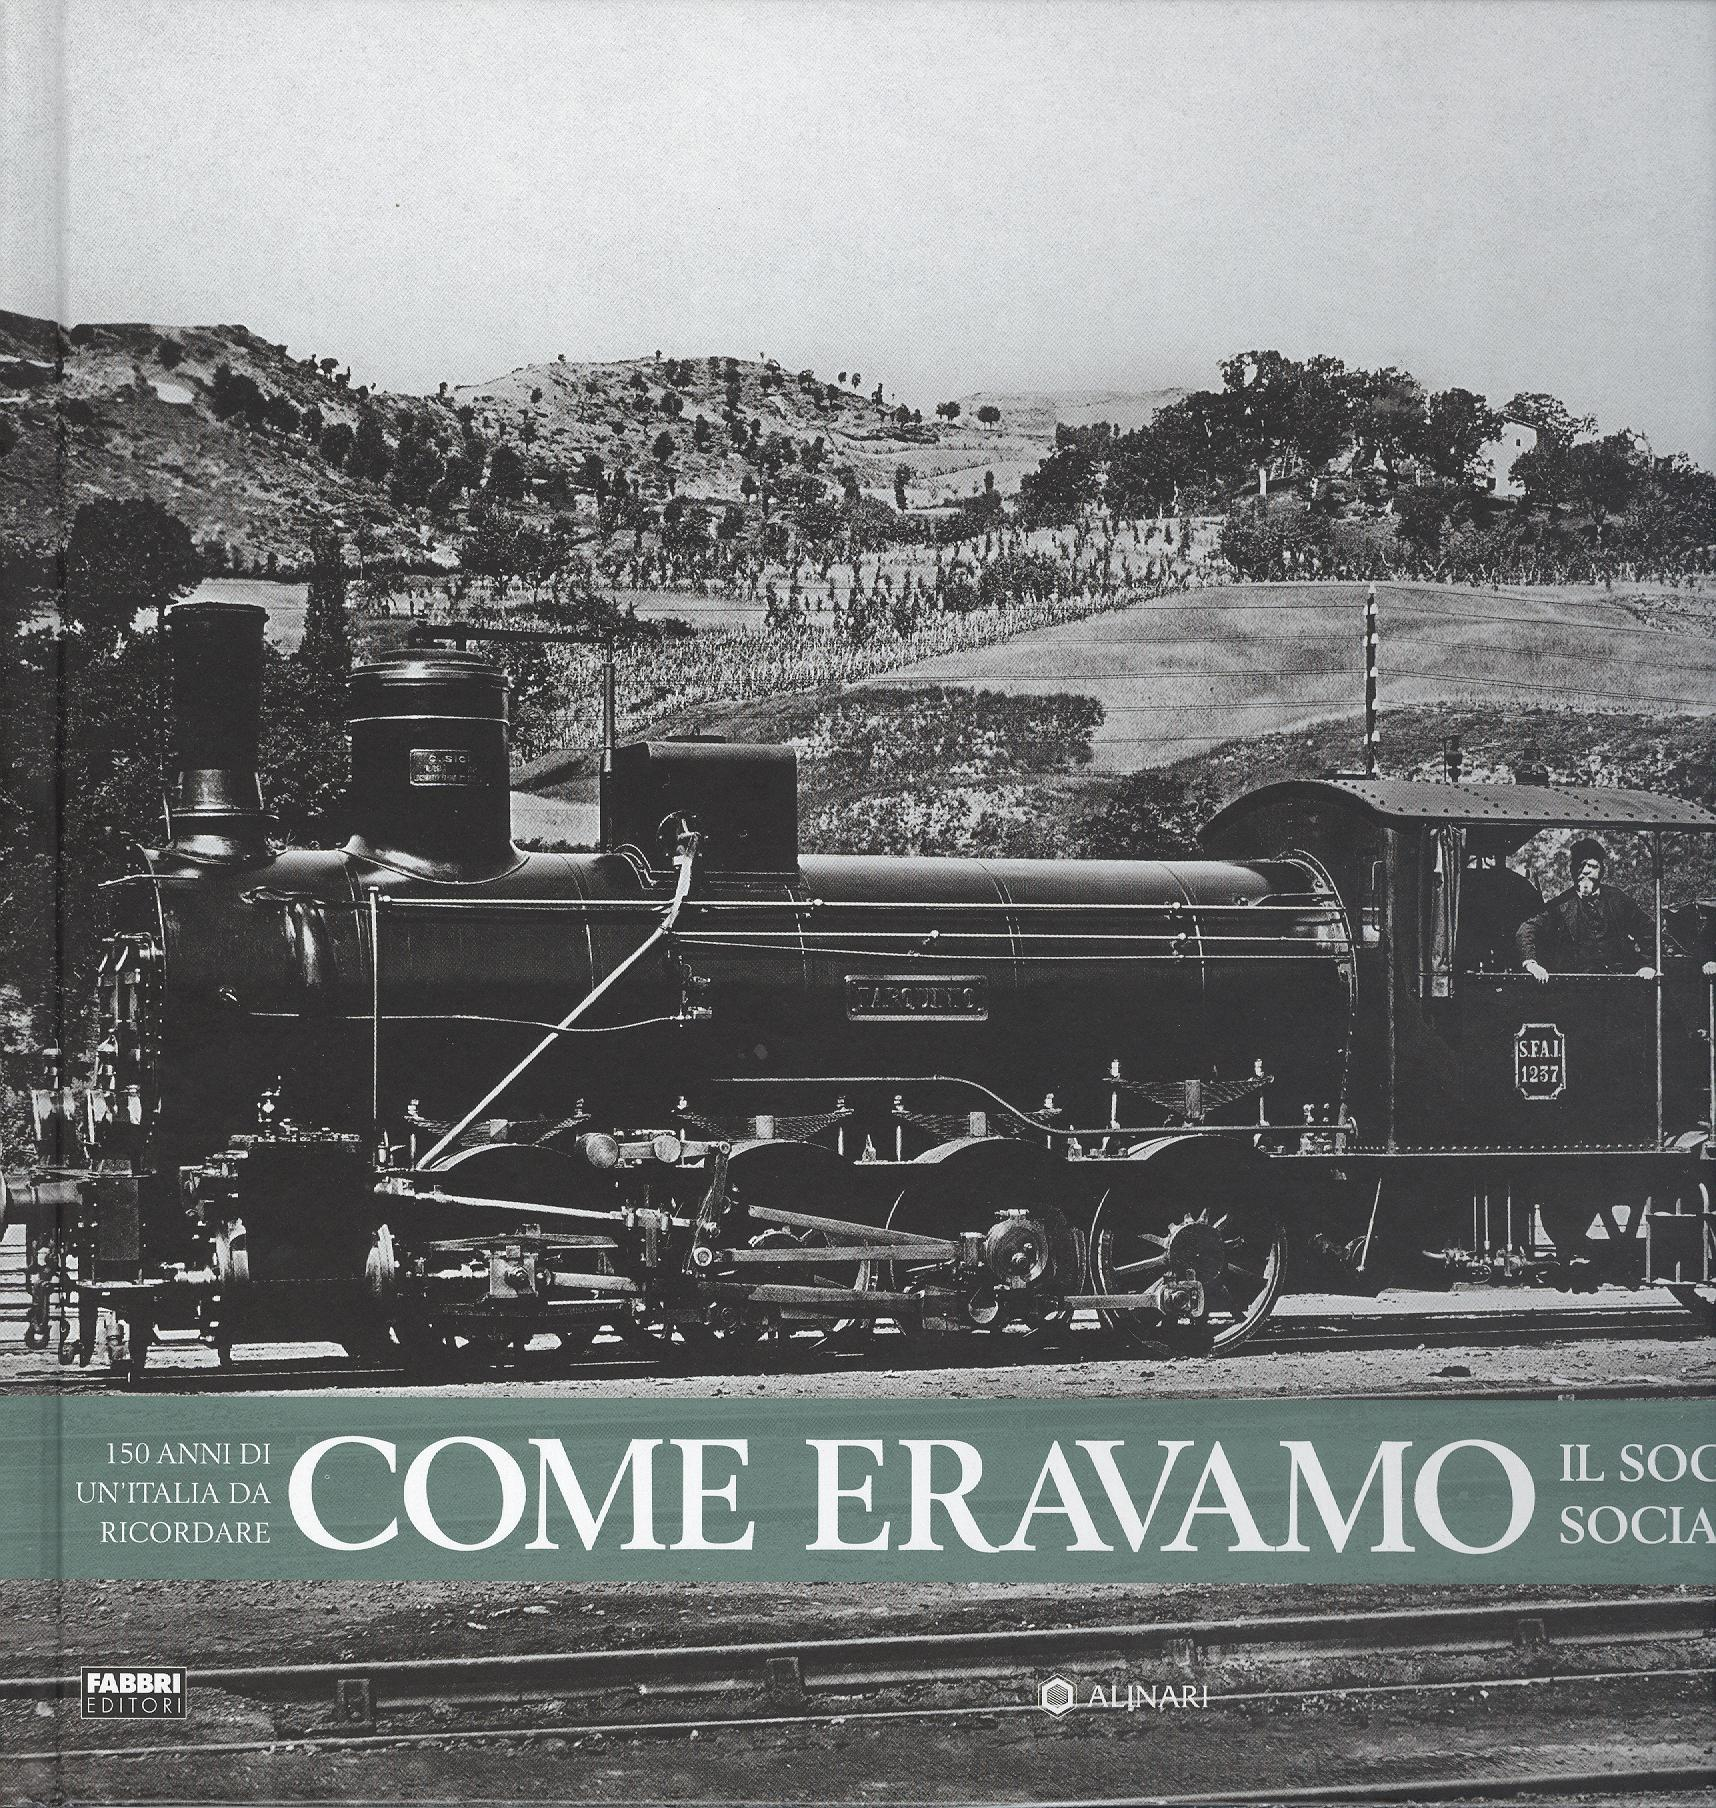 Come eravamo - vol. 9